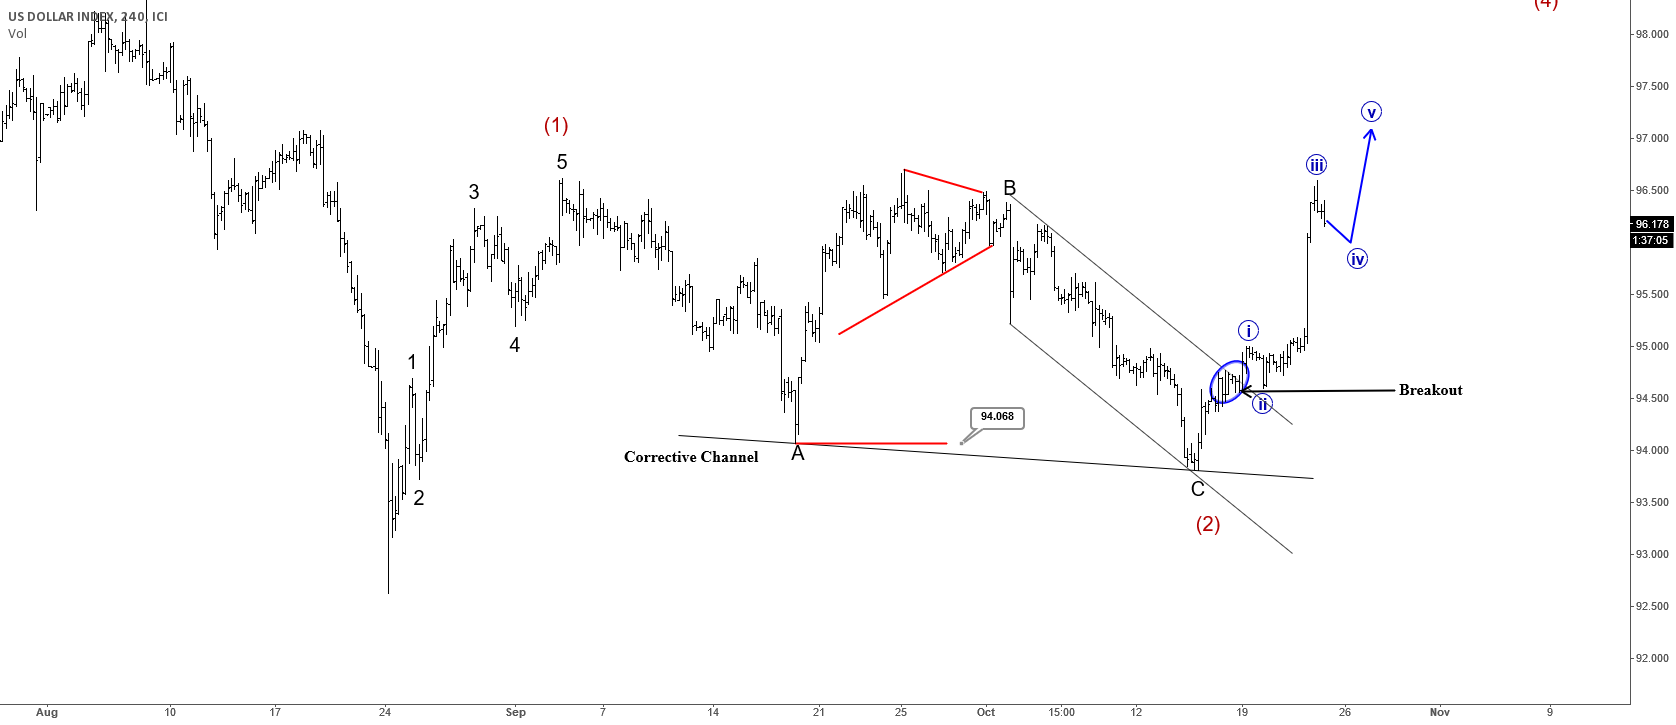 USD Index Could Reach Higher Levels After Temporary Pullback